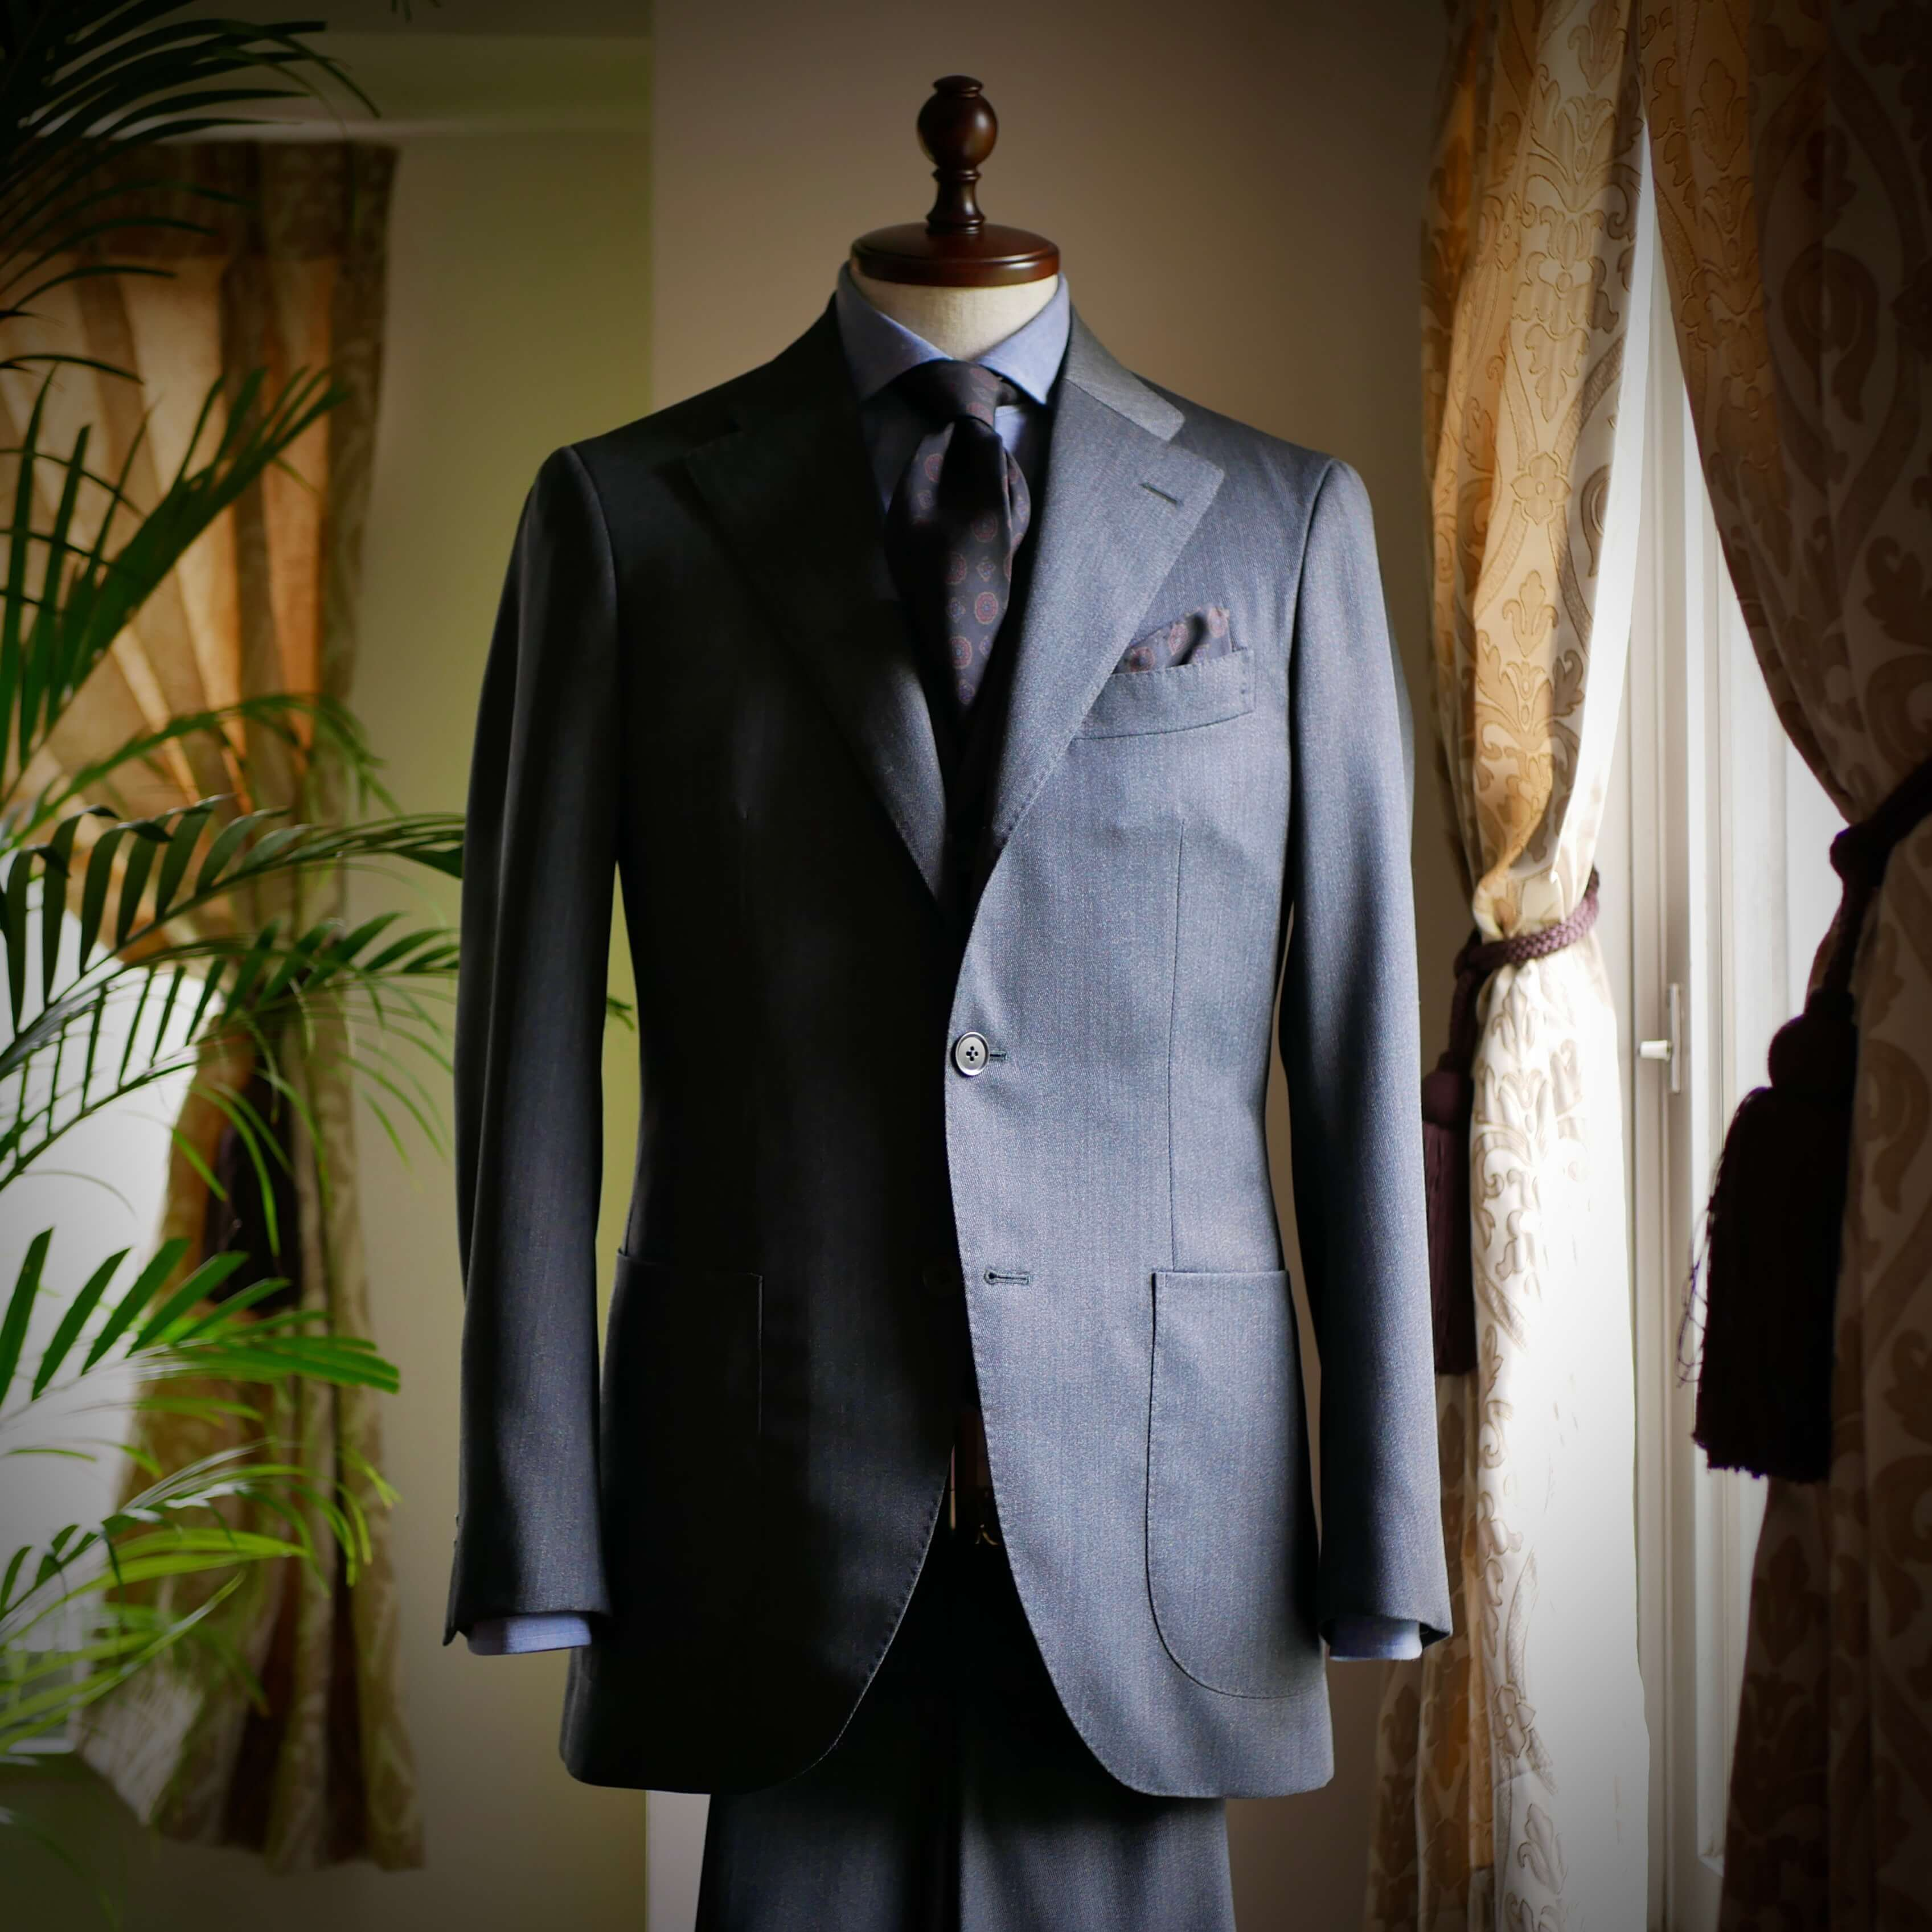 VITALE BARBERIS CANONICO_20190101_suits_02.jpg